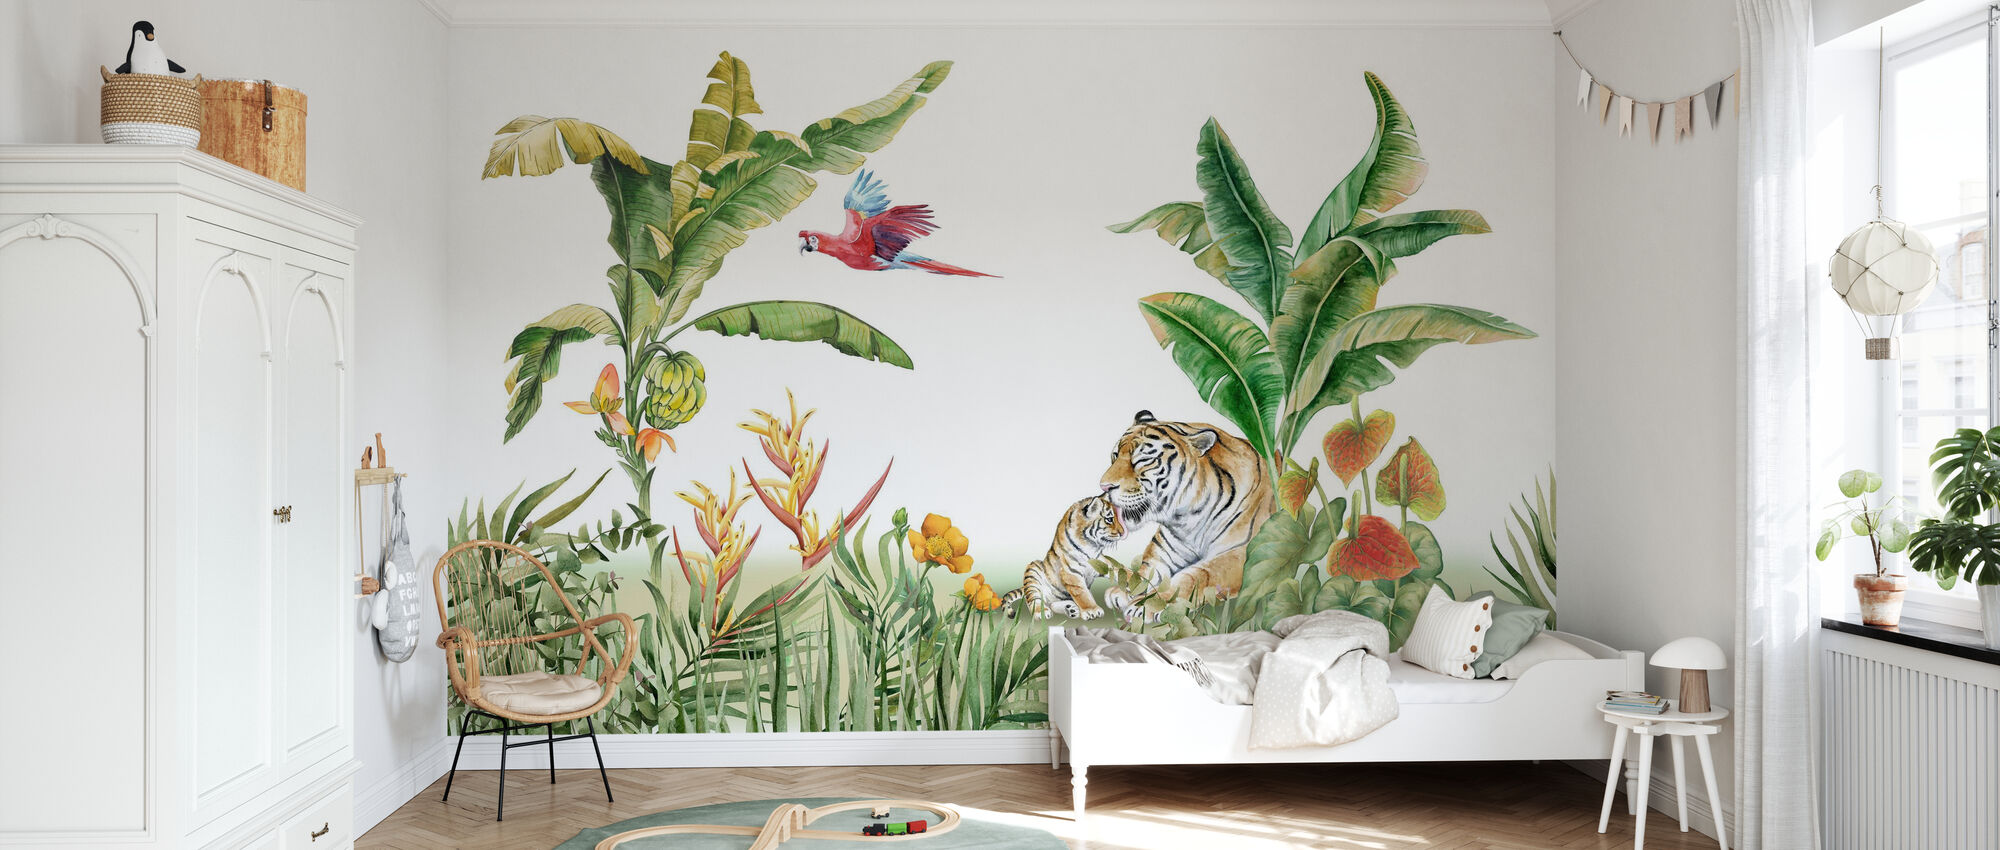 Relaxing in the Sun - Bright - Wallpaper - Kids Room